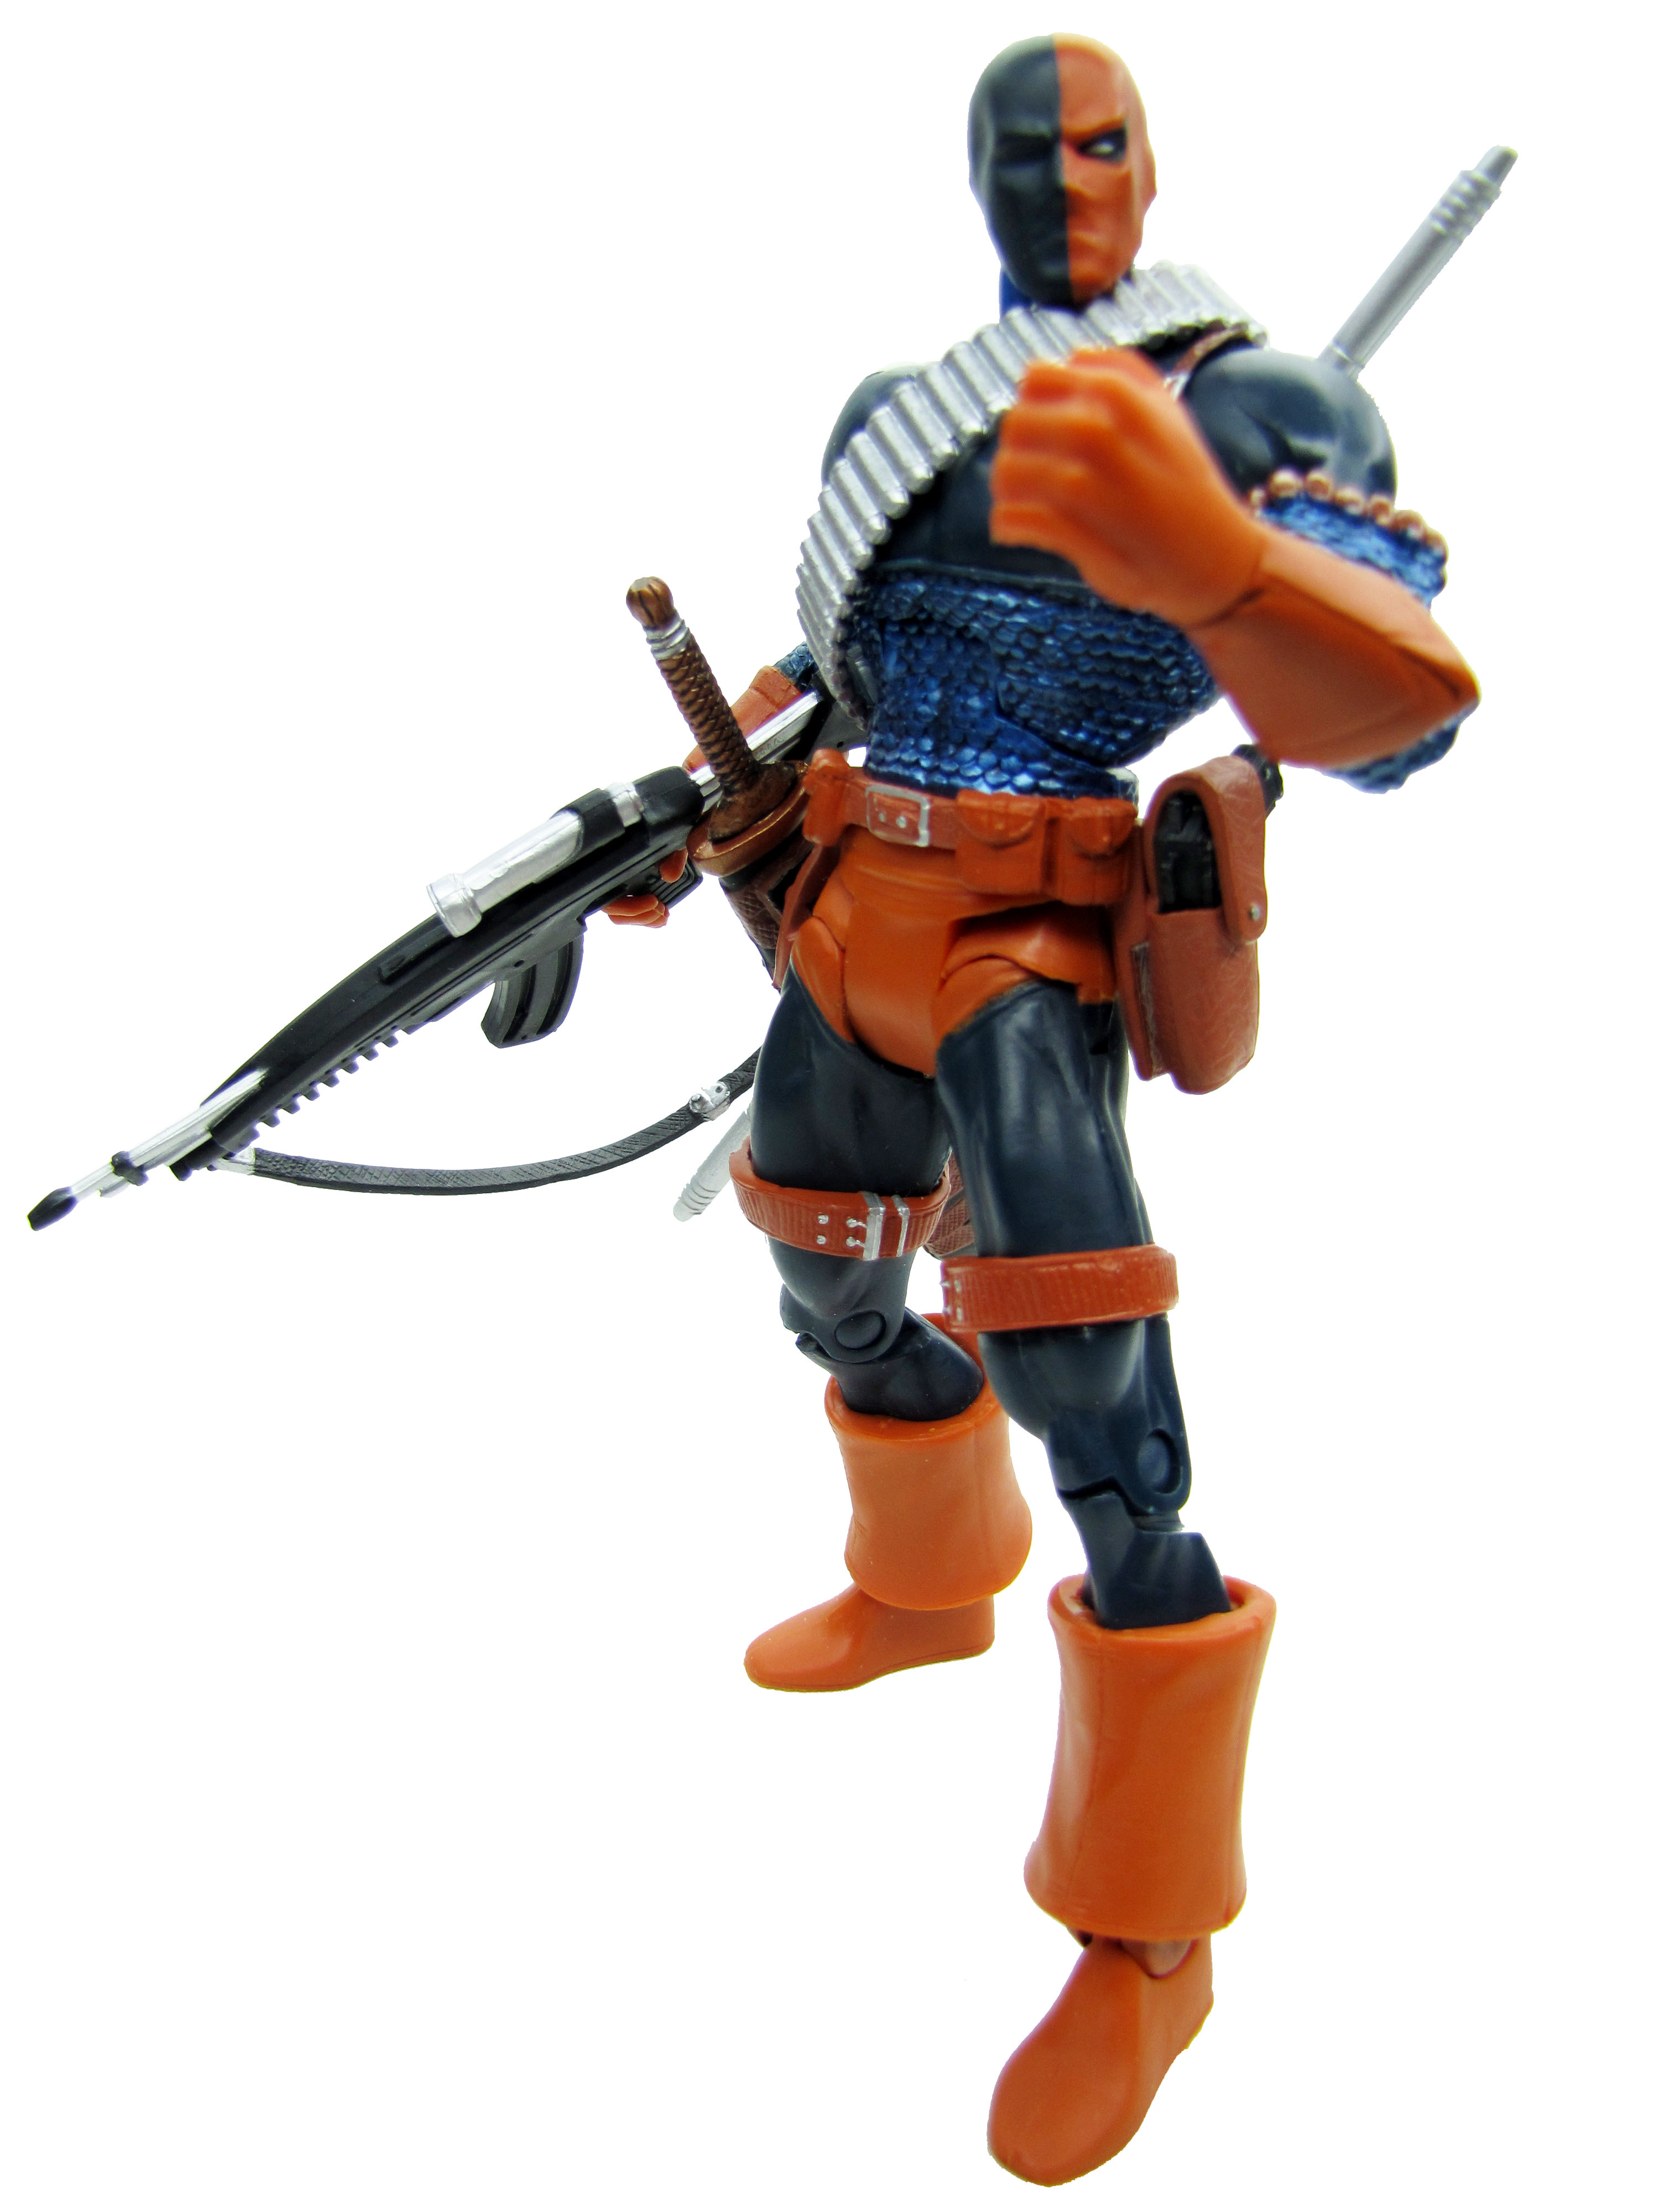 DC Universe Classics Wave 3 Deathstroke The Terminator Complete